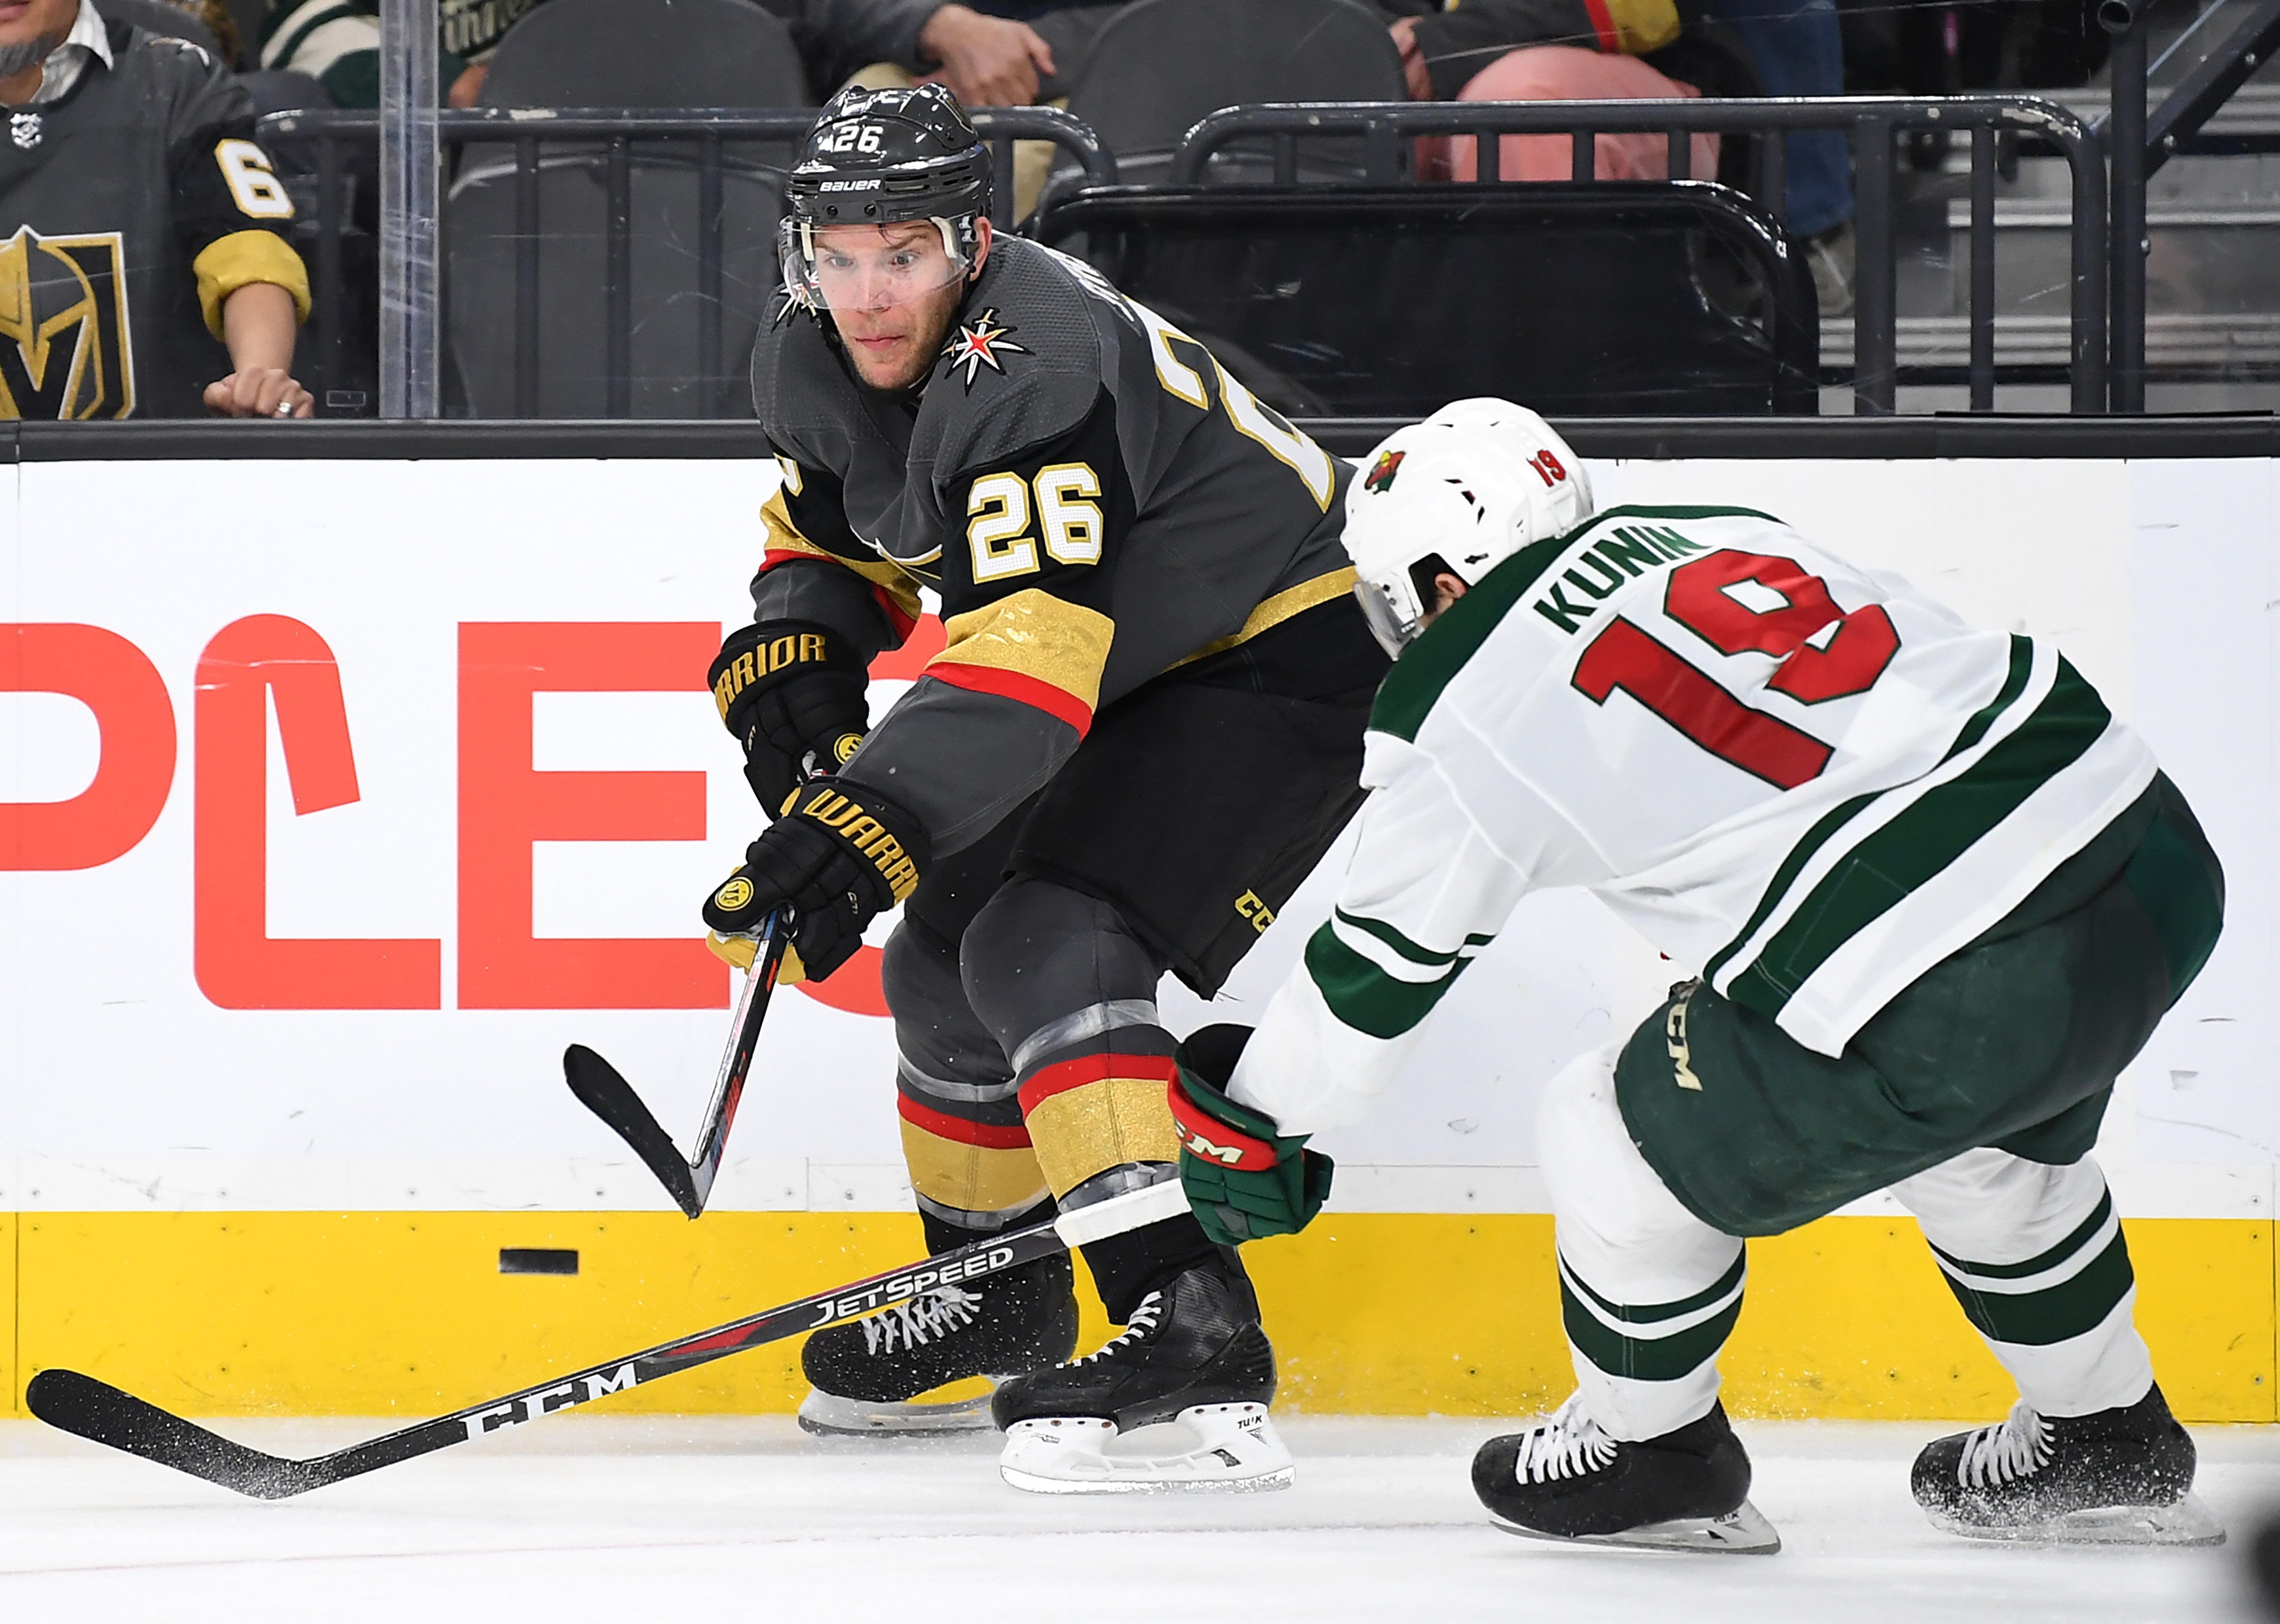 Game Preview: Minnesota Wild vs. Vegas Golden Knights 12/17/19 @ 9:00PM CST at T-Mobile Arena